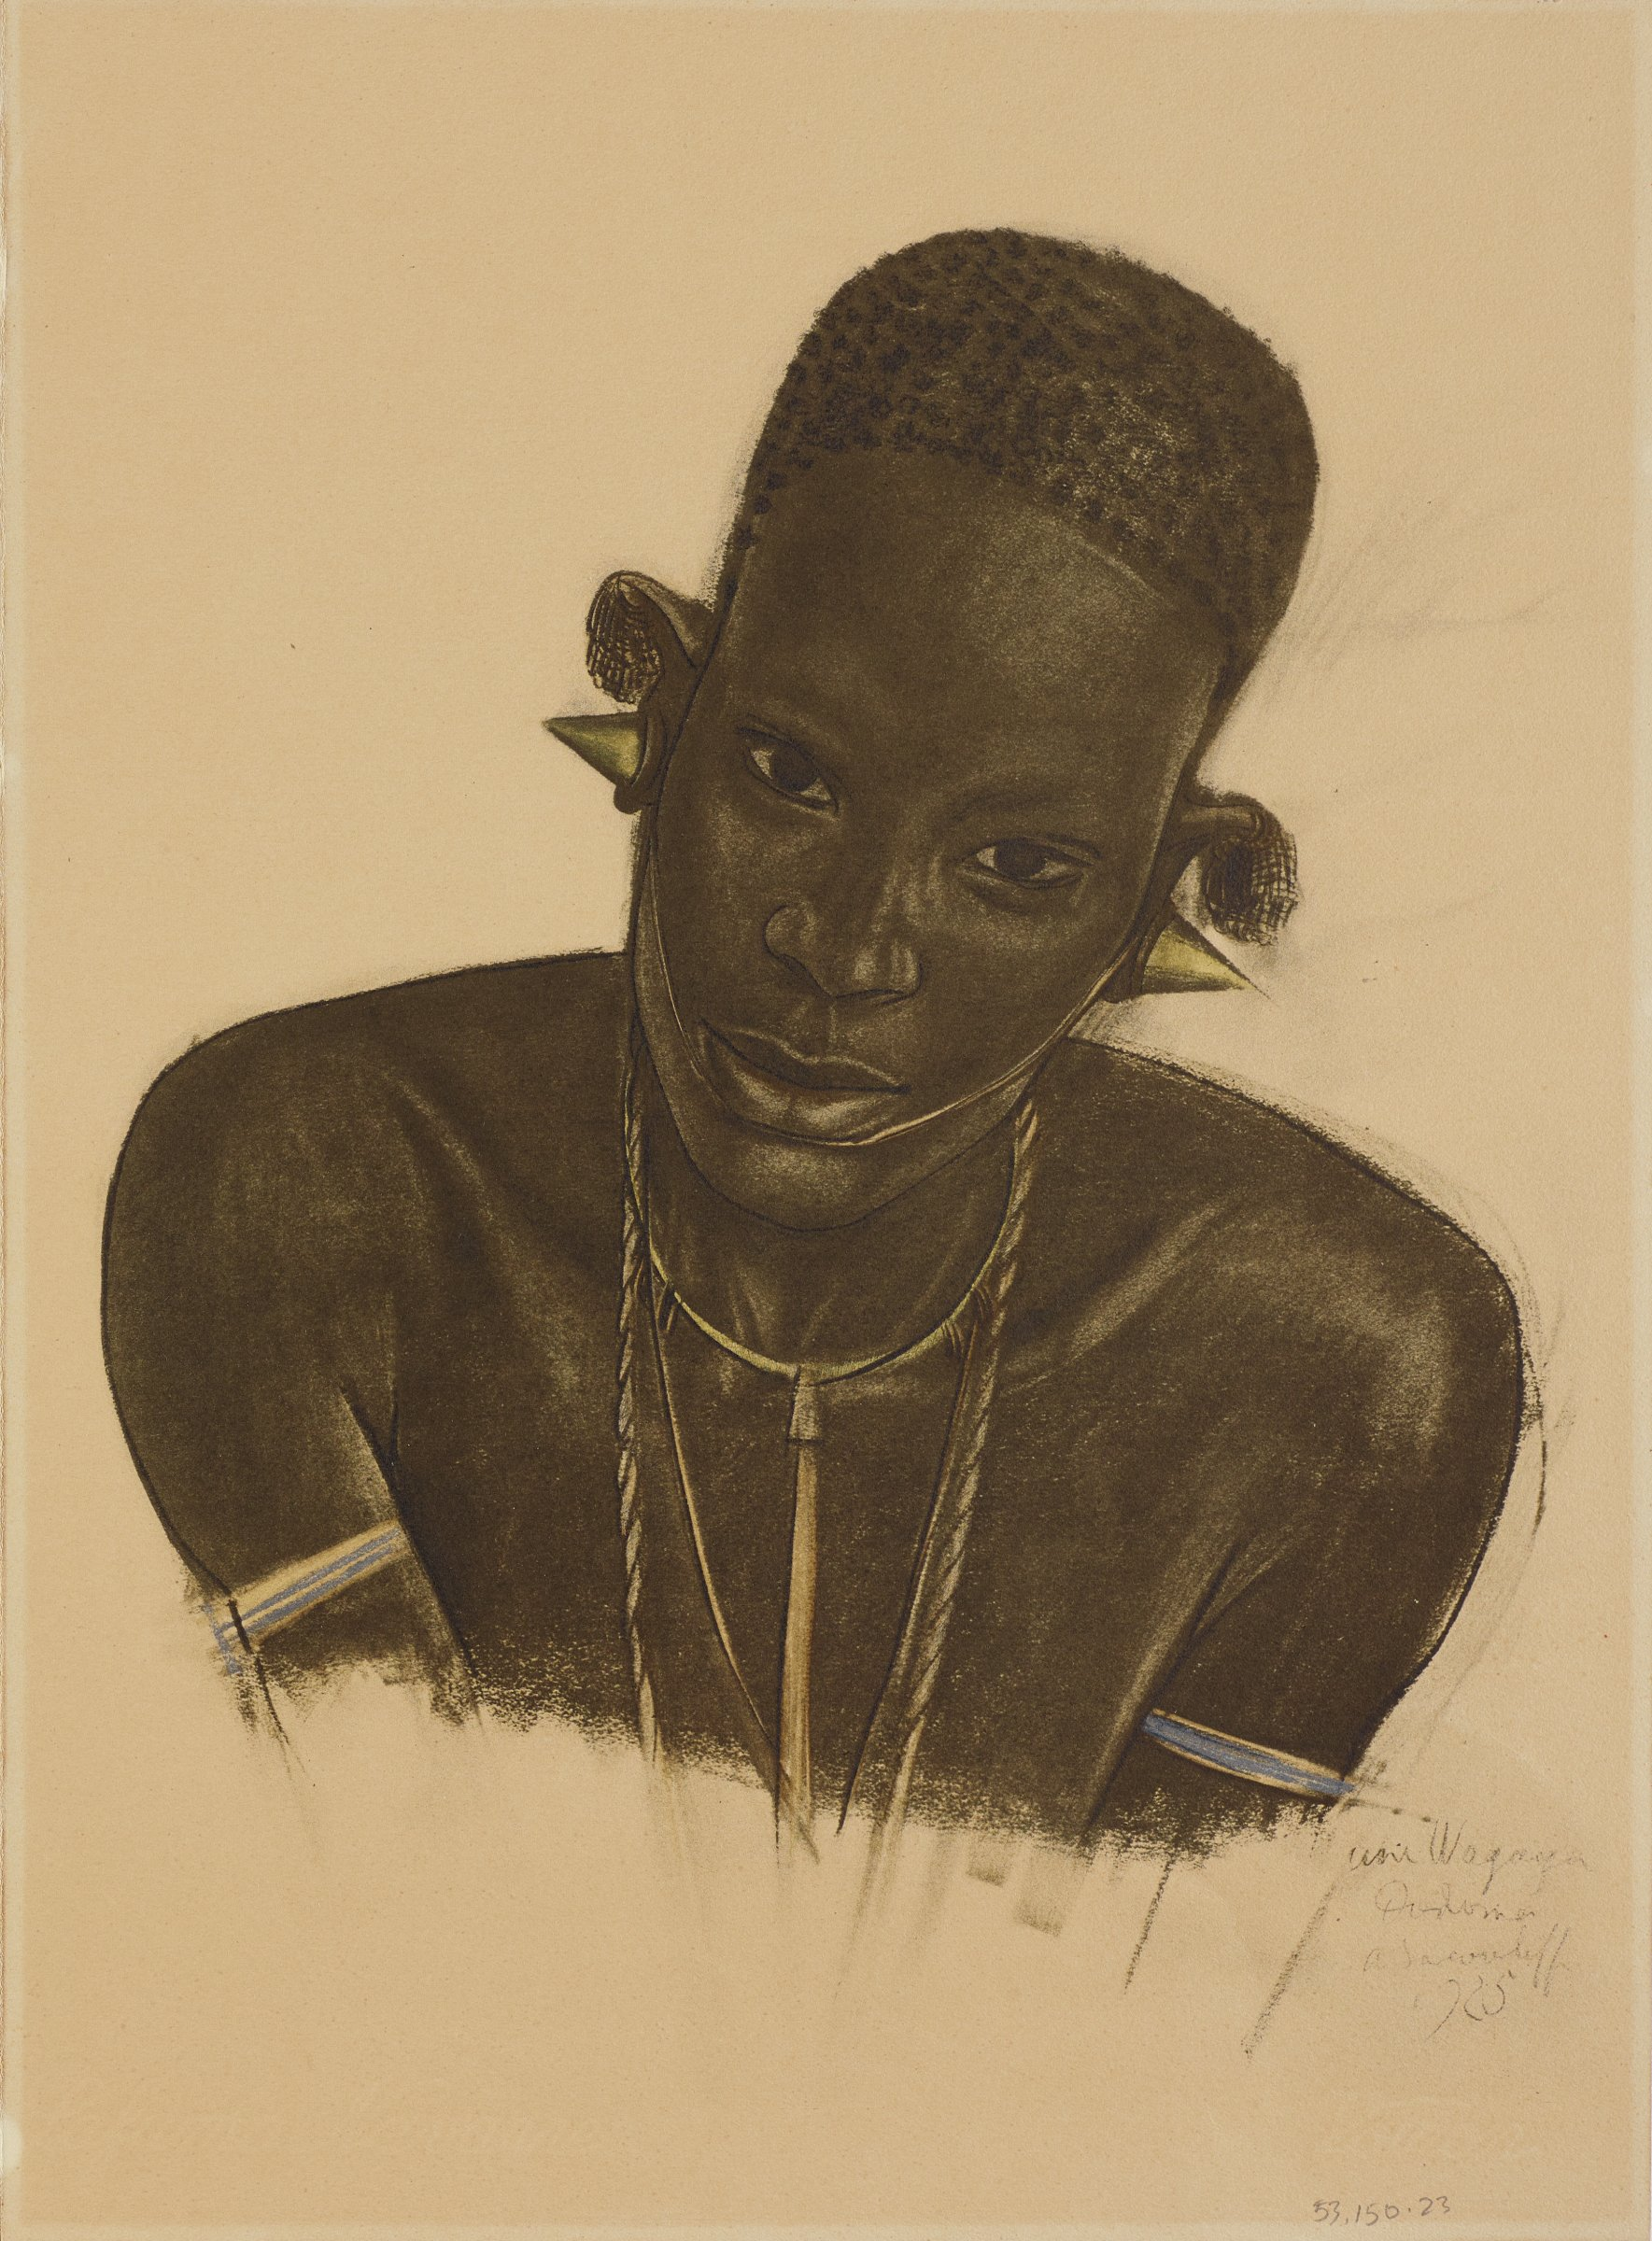 Portrait of a woman figure leaning slightly to the right and looking forward. She is adorned with various pieces of jewelry: conical earings, multiple necklaces, and an arm band on each arm. This series is a product of Jacovleff's involvement in the Expédition Citroën Centre-Afrique.